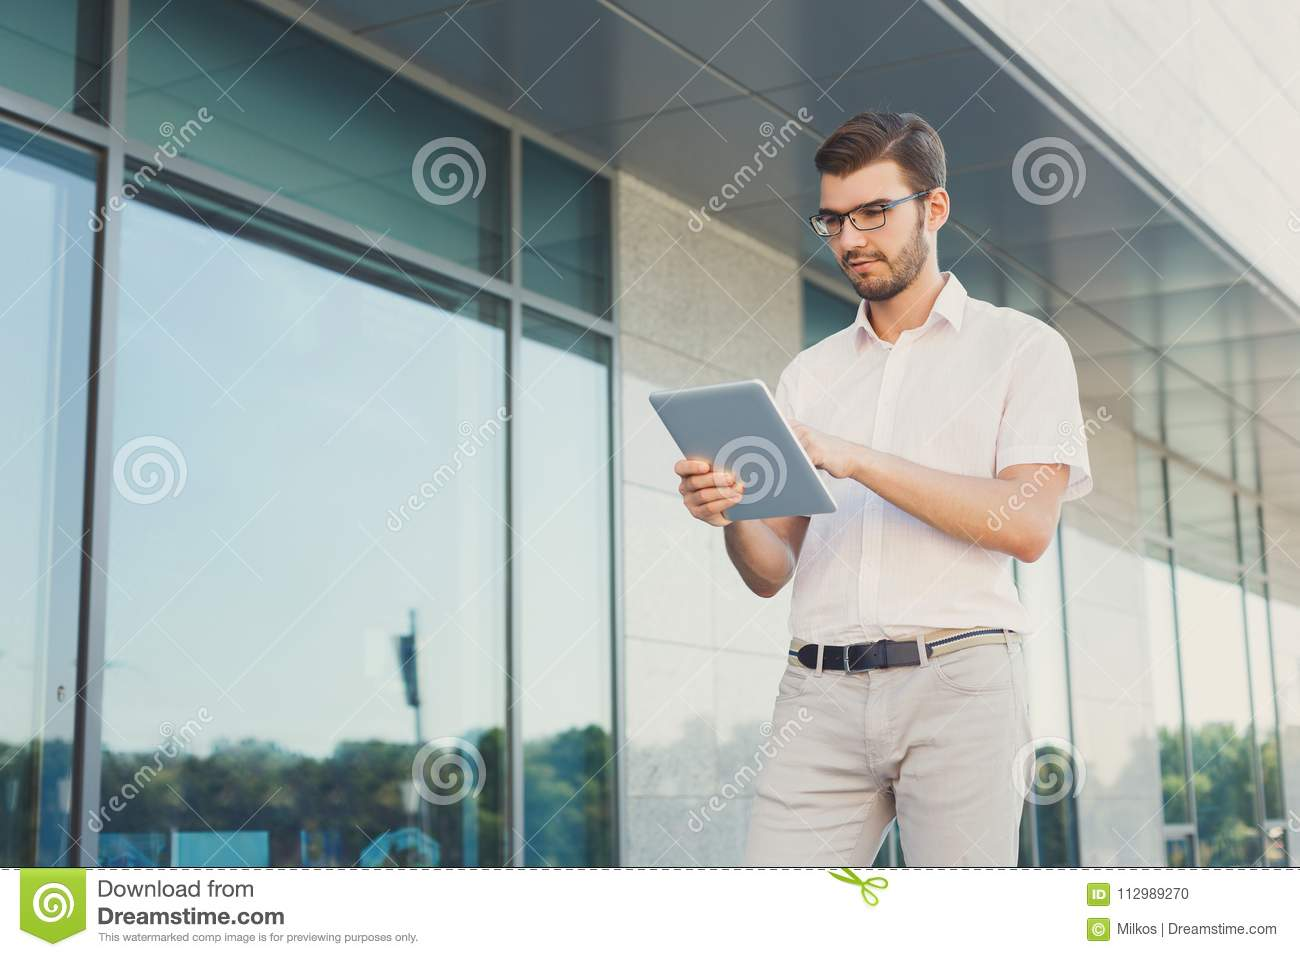 Pensive businessman using tablet outdoors